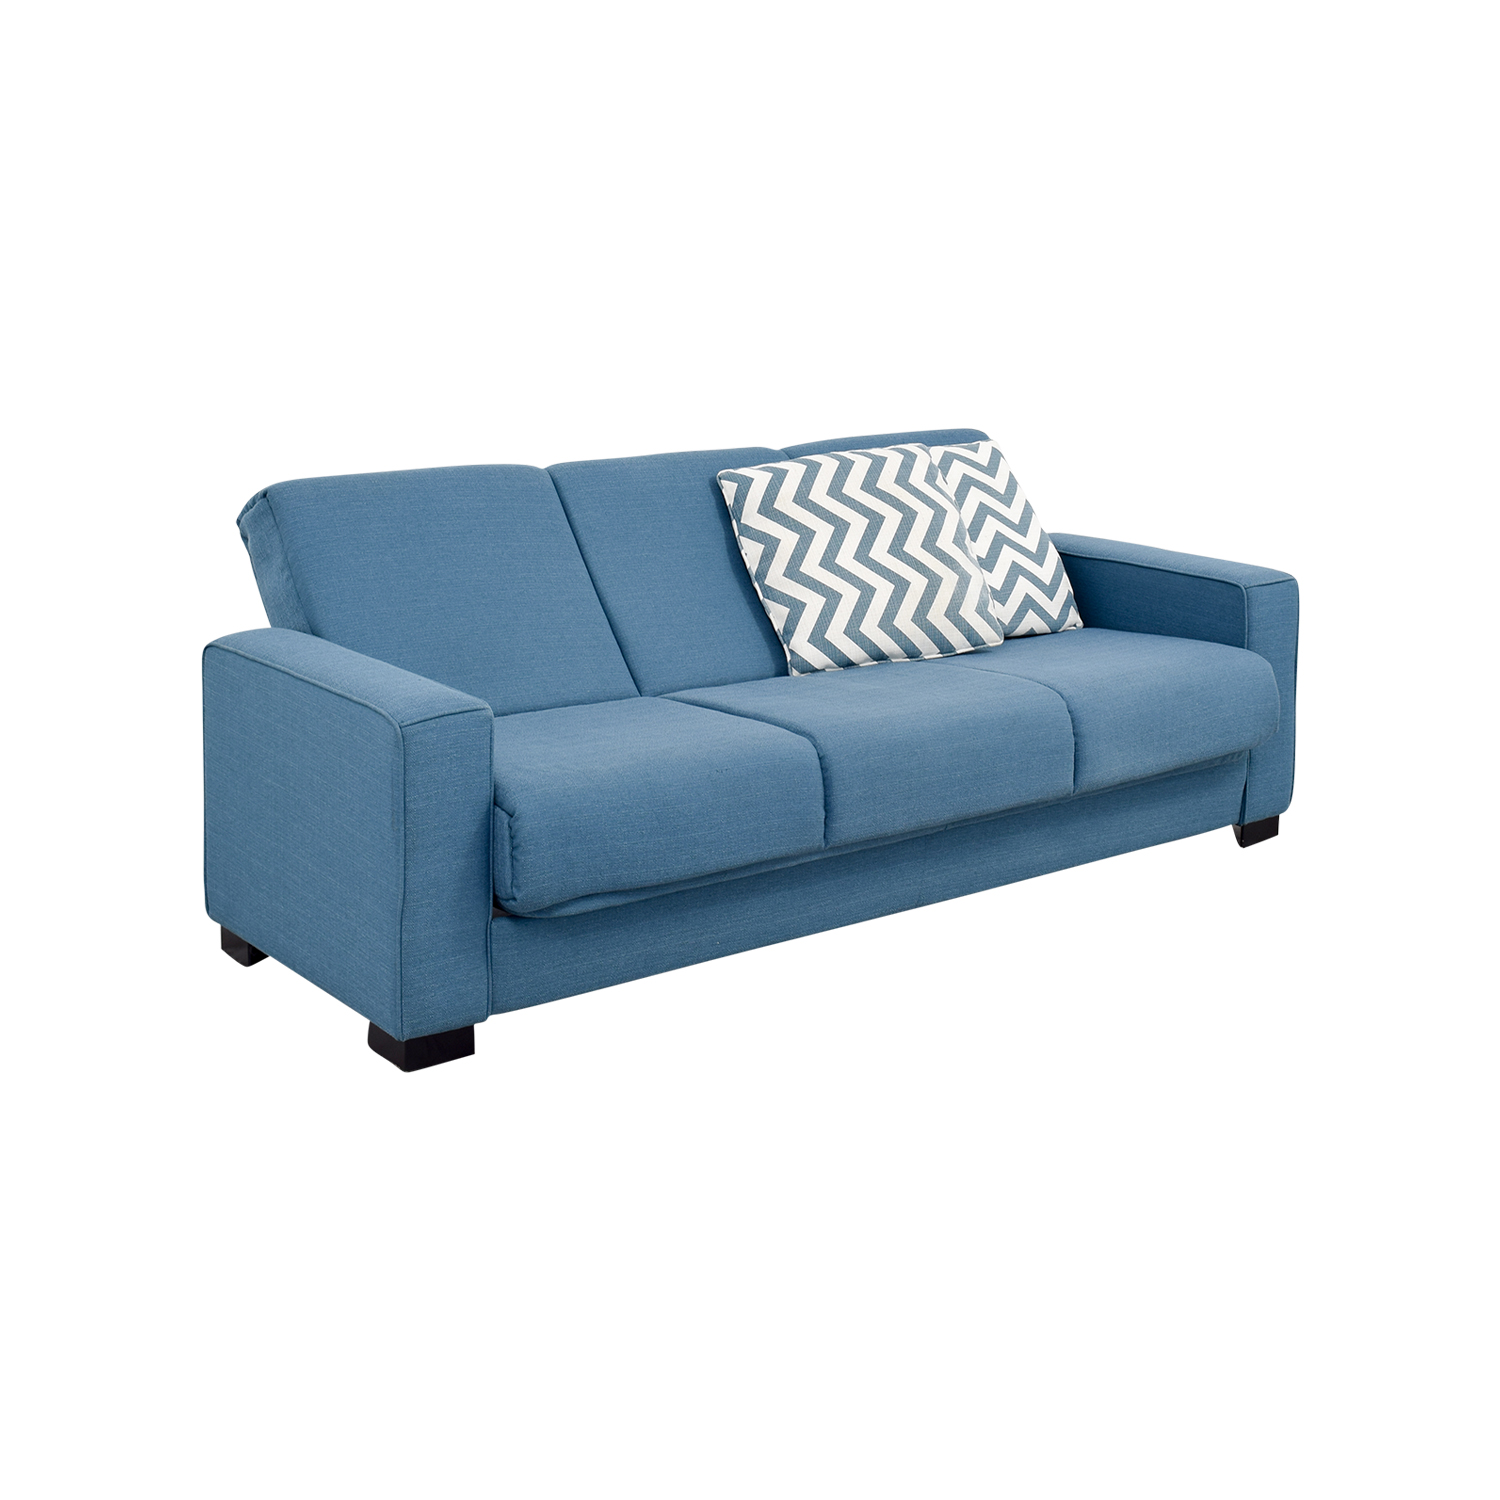 77 Off Bed Bath Beyond Blue Convert A Couch Sofas